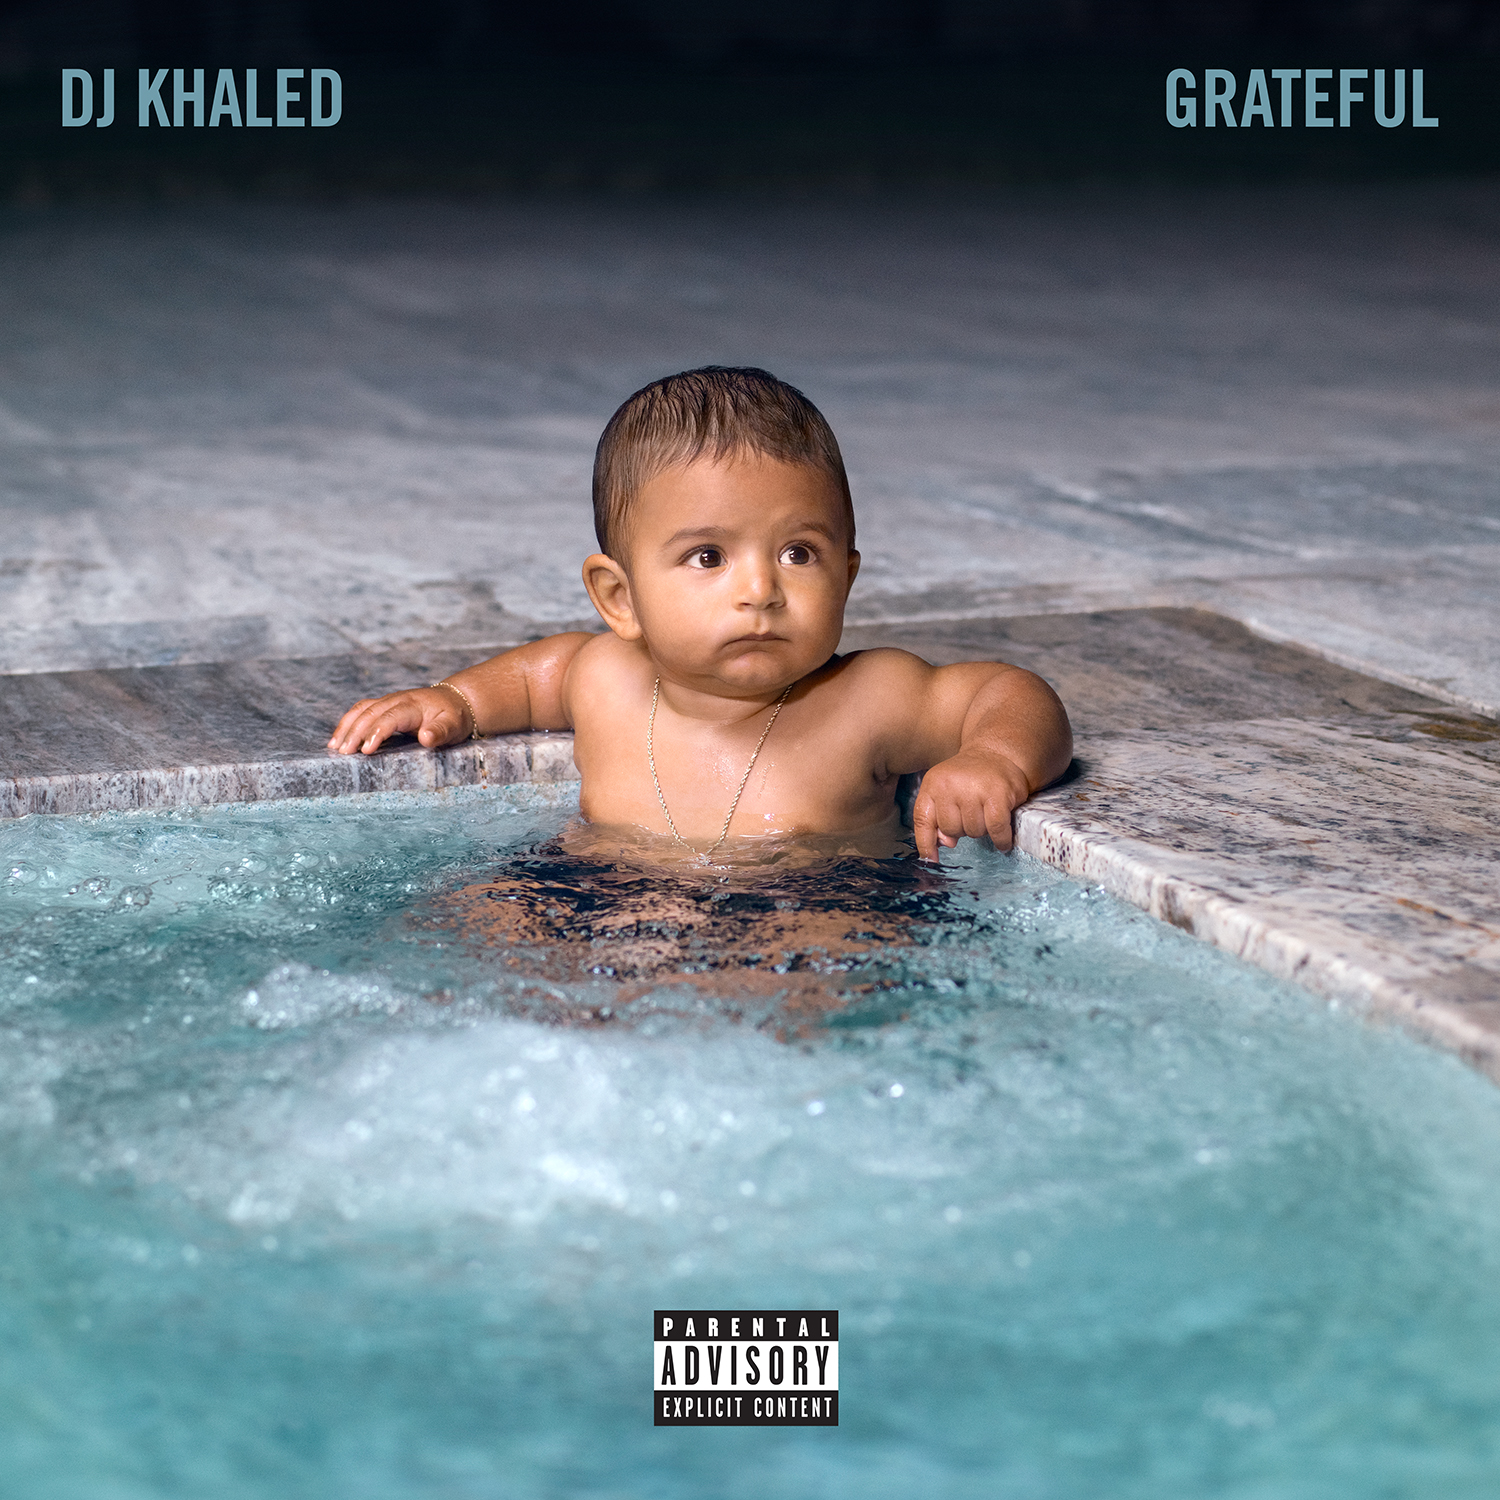 cda3aaab9d1 DJ KHALED RELEASES BLOCKBUSTER NEW ALBUM GRATEFUL TODAY - Epic Records